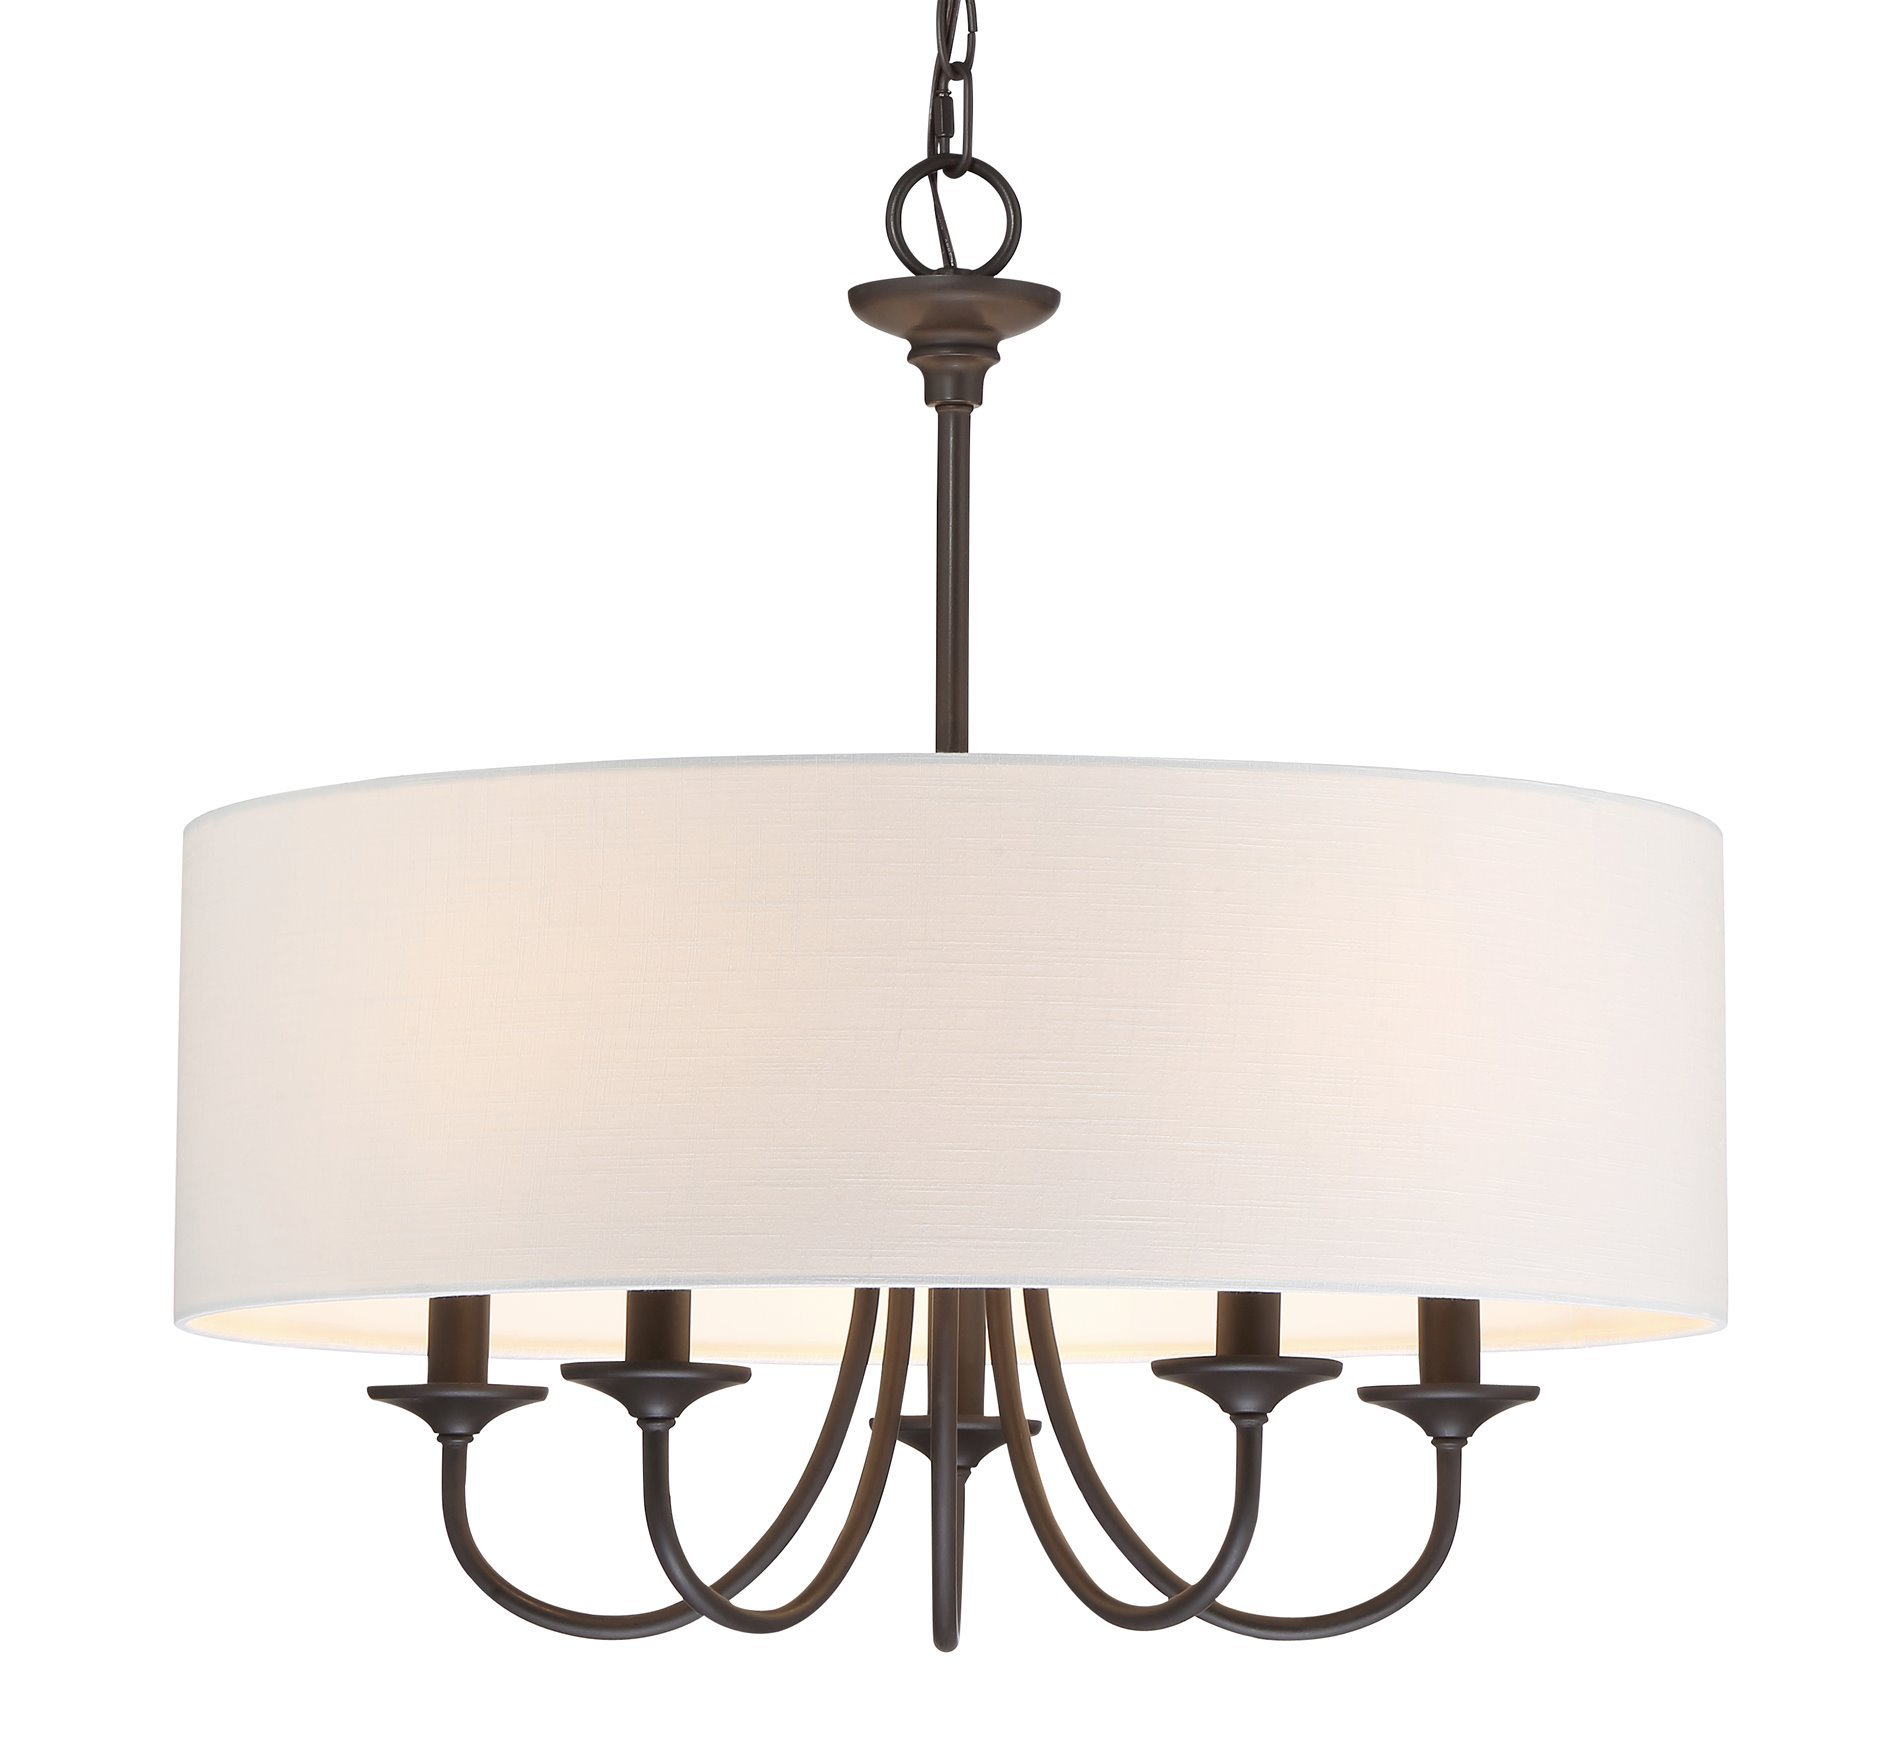 Revel Quinn 21'' Traditional 5-Light Chandeiler + White Linen Drum Shade, Oil-Rubbed Bronze Finish by Revel